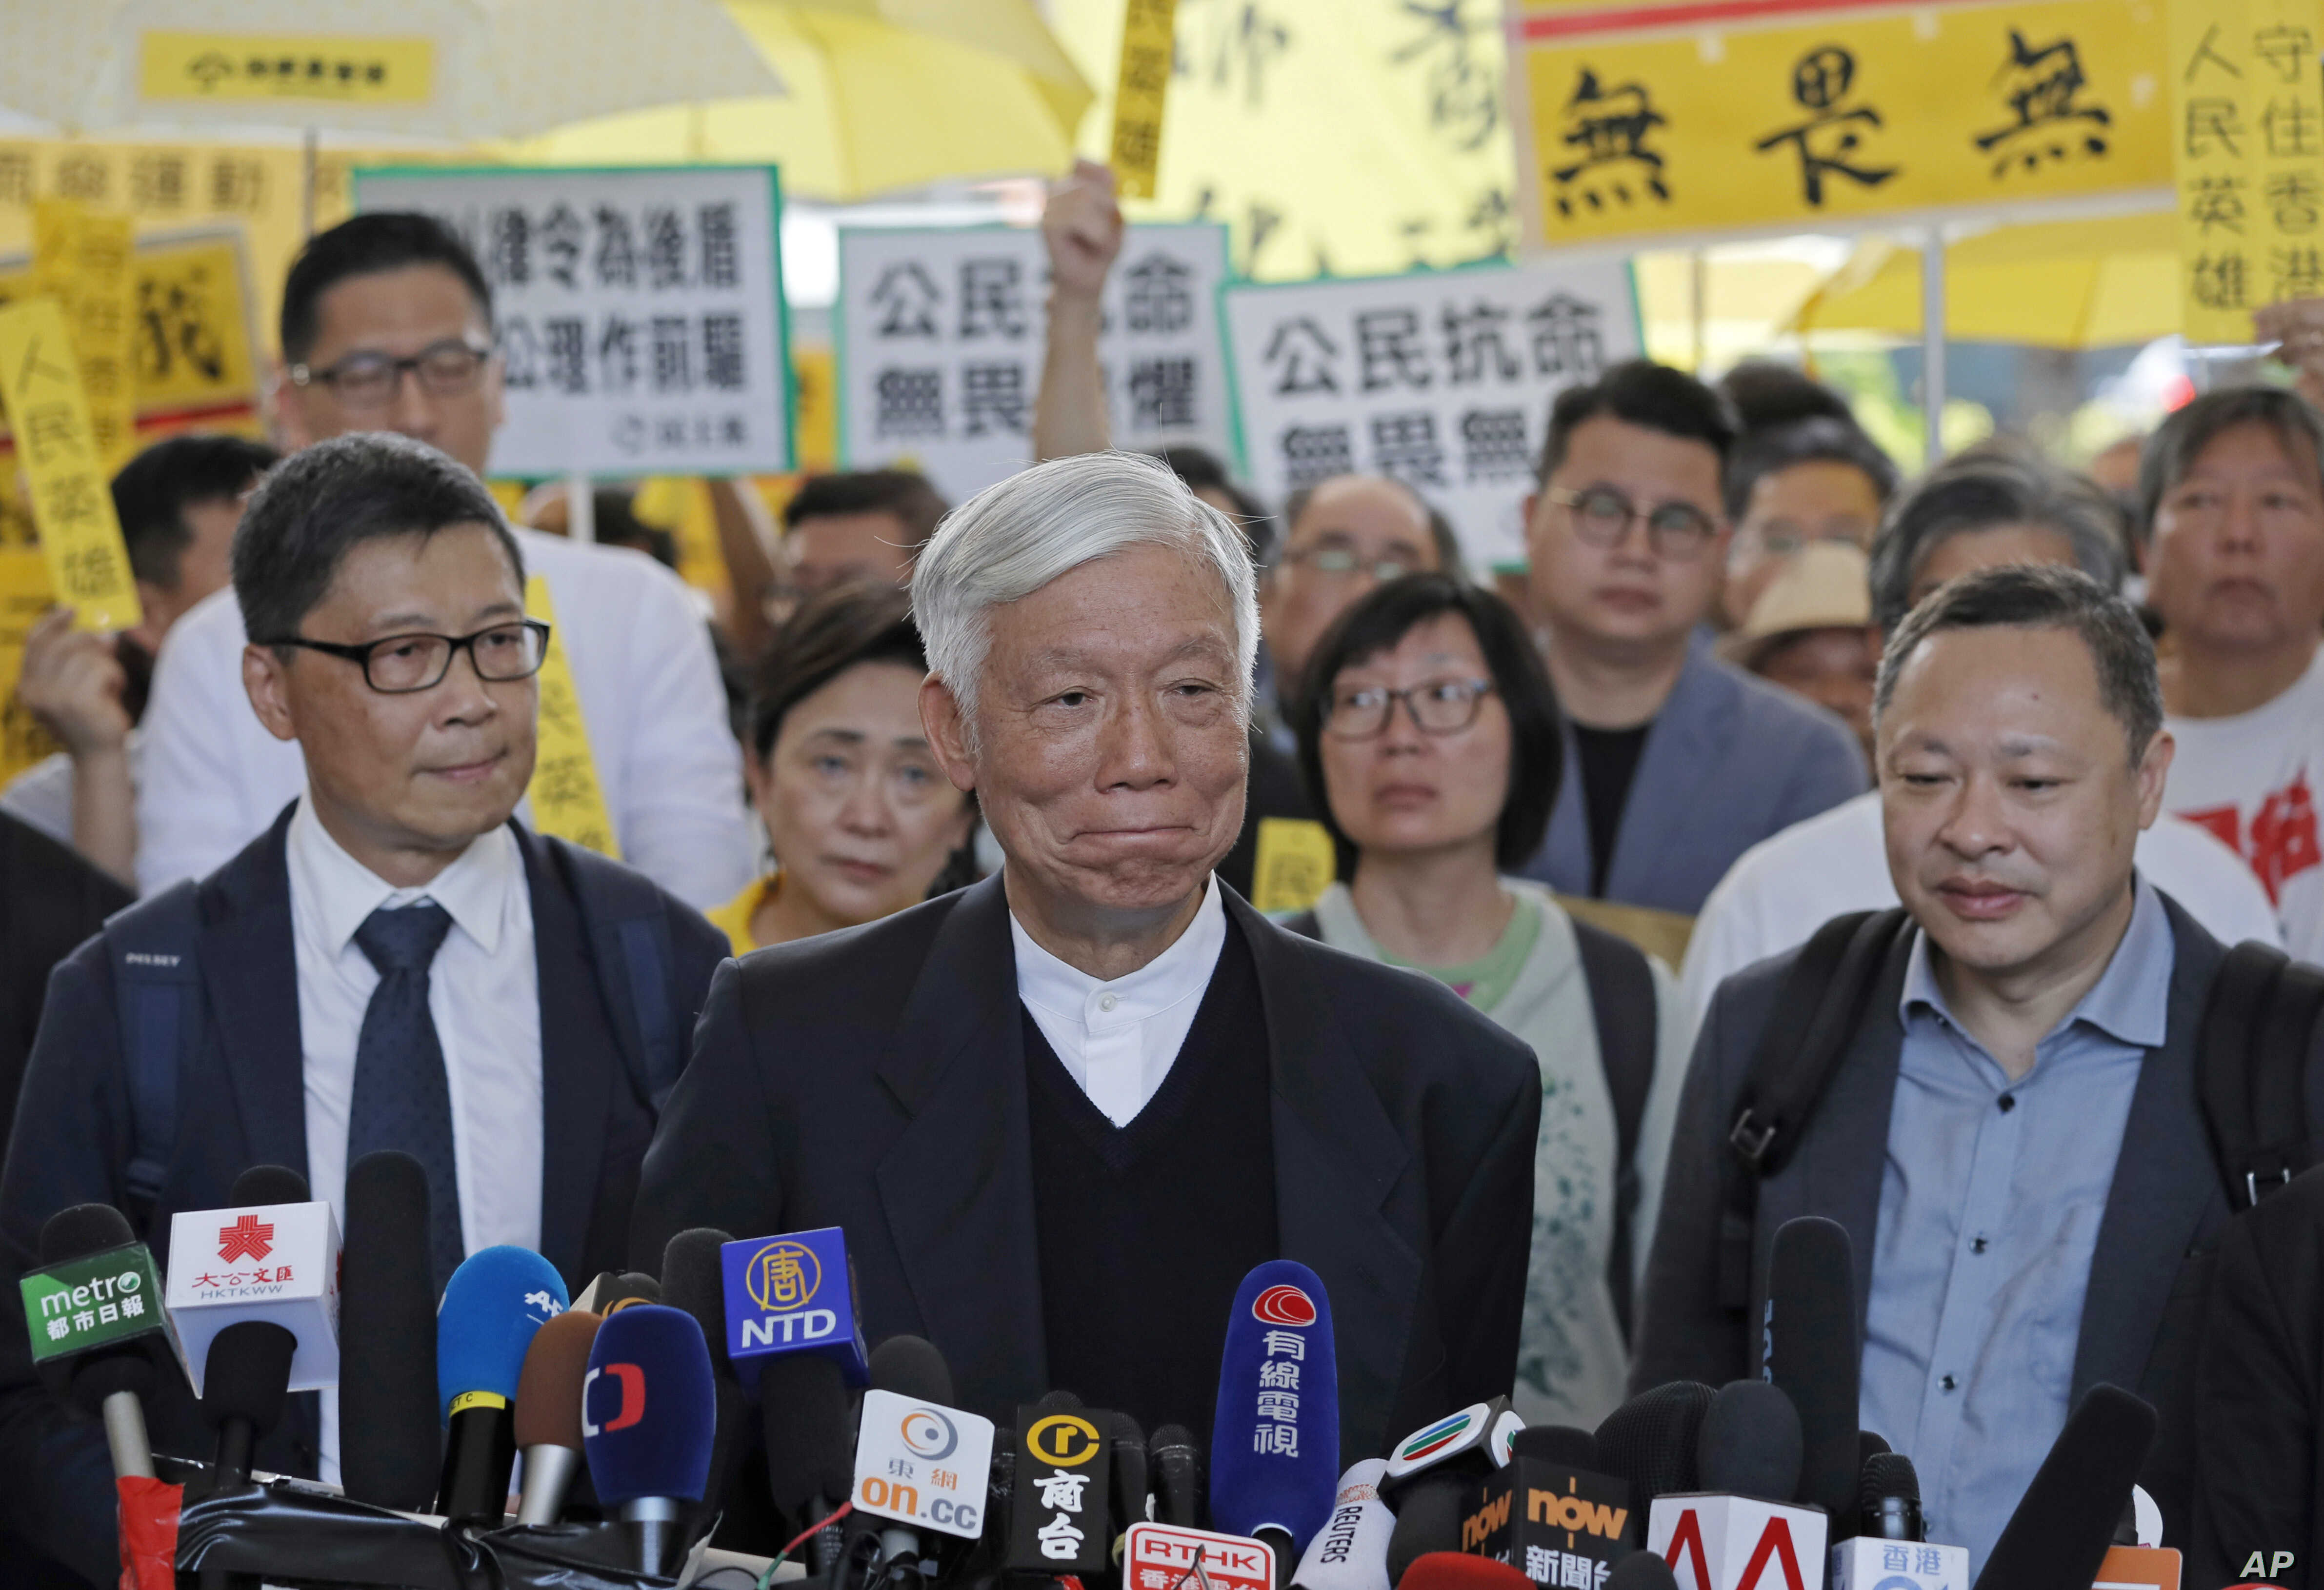 Occupy Central leaders, from right, Benny Tai, Chu Yiu-ming and Chan Kin-man speak before entering a court in Hong Kong, April 9, 2019.